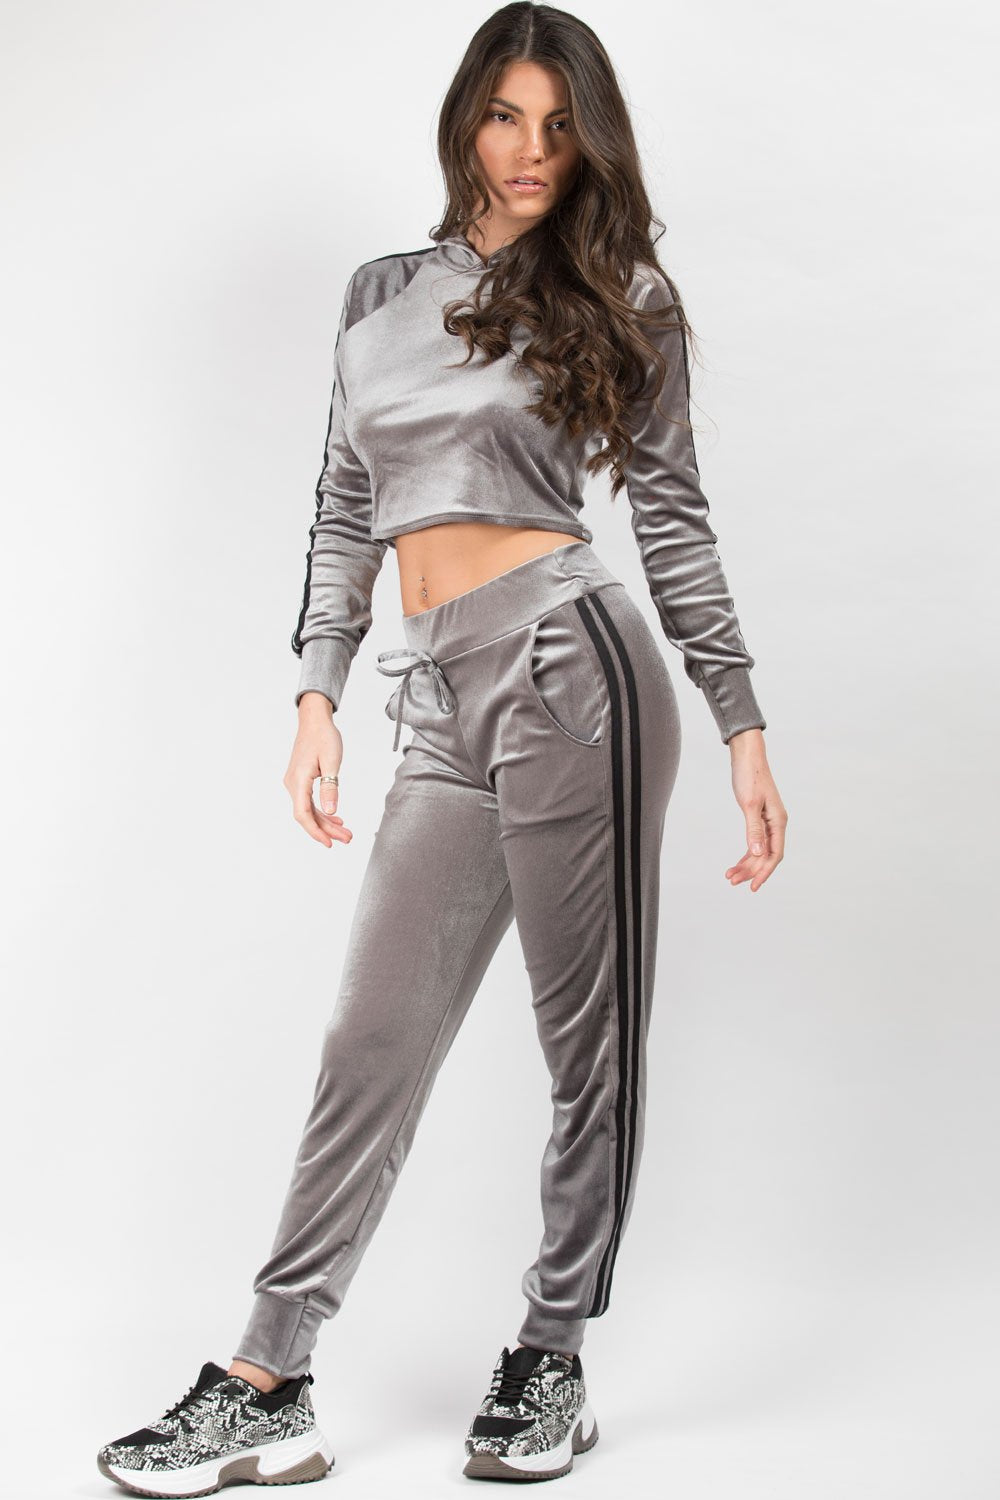 grey loungewear set womens